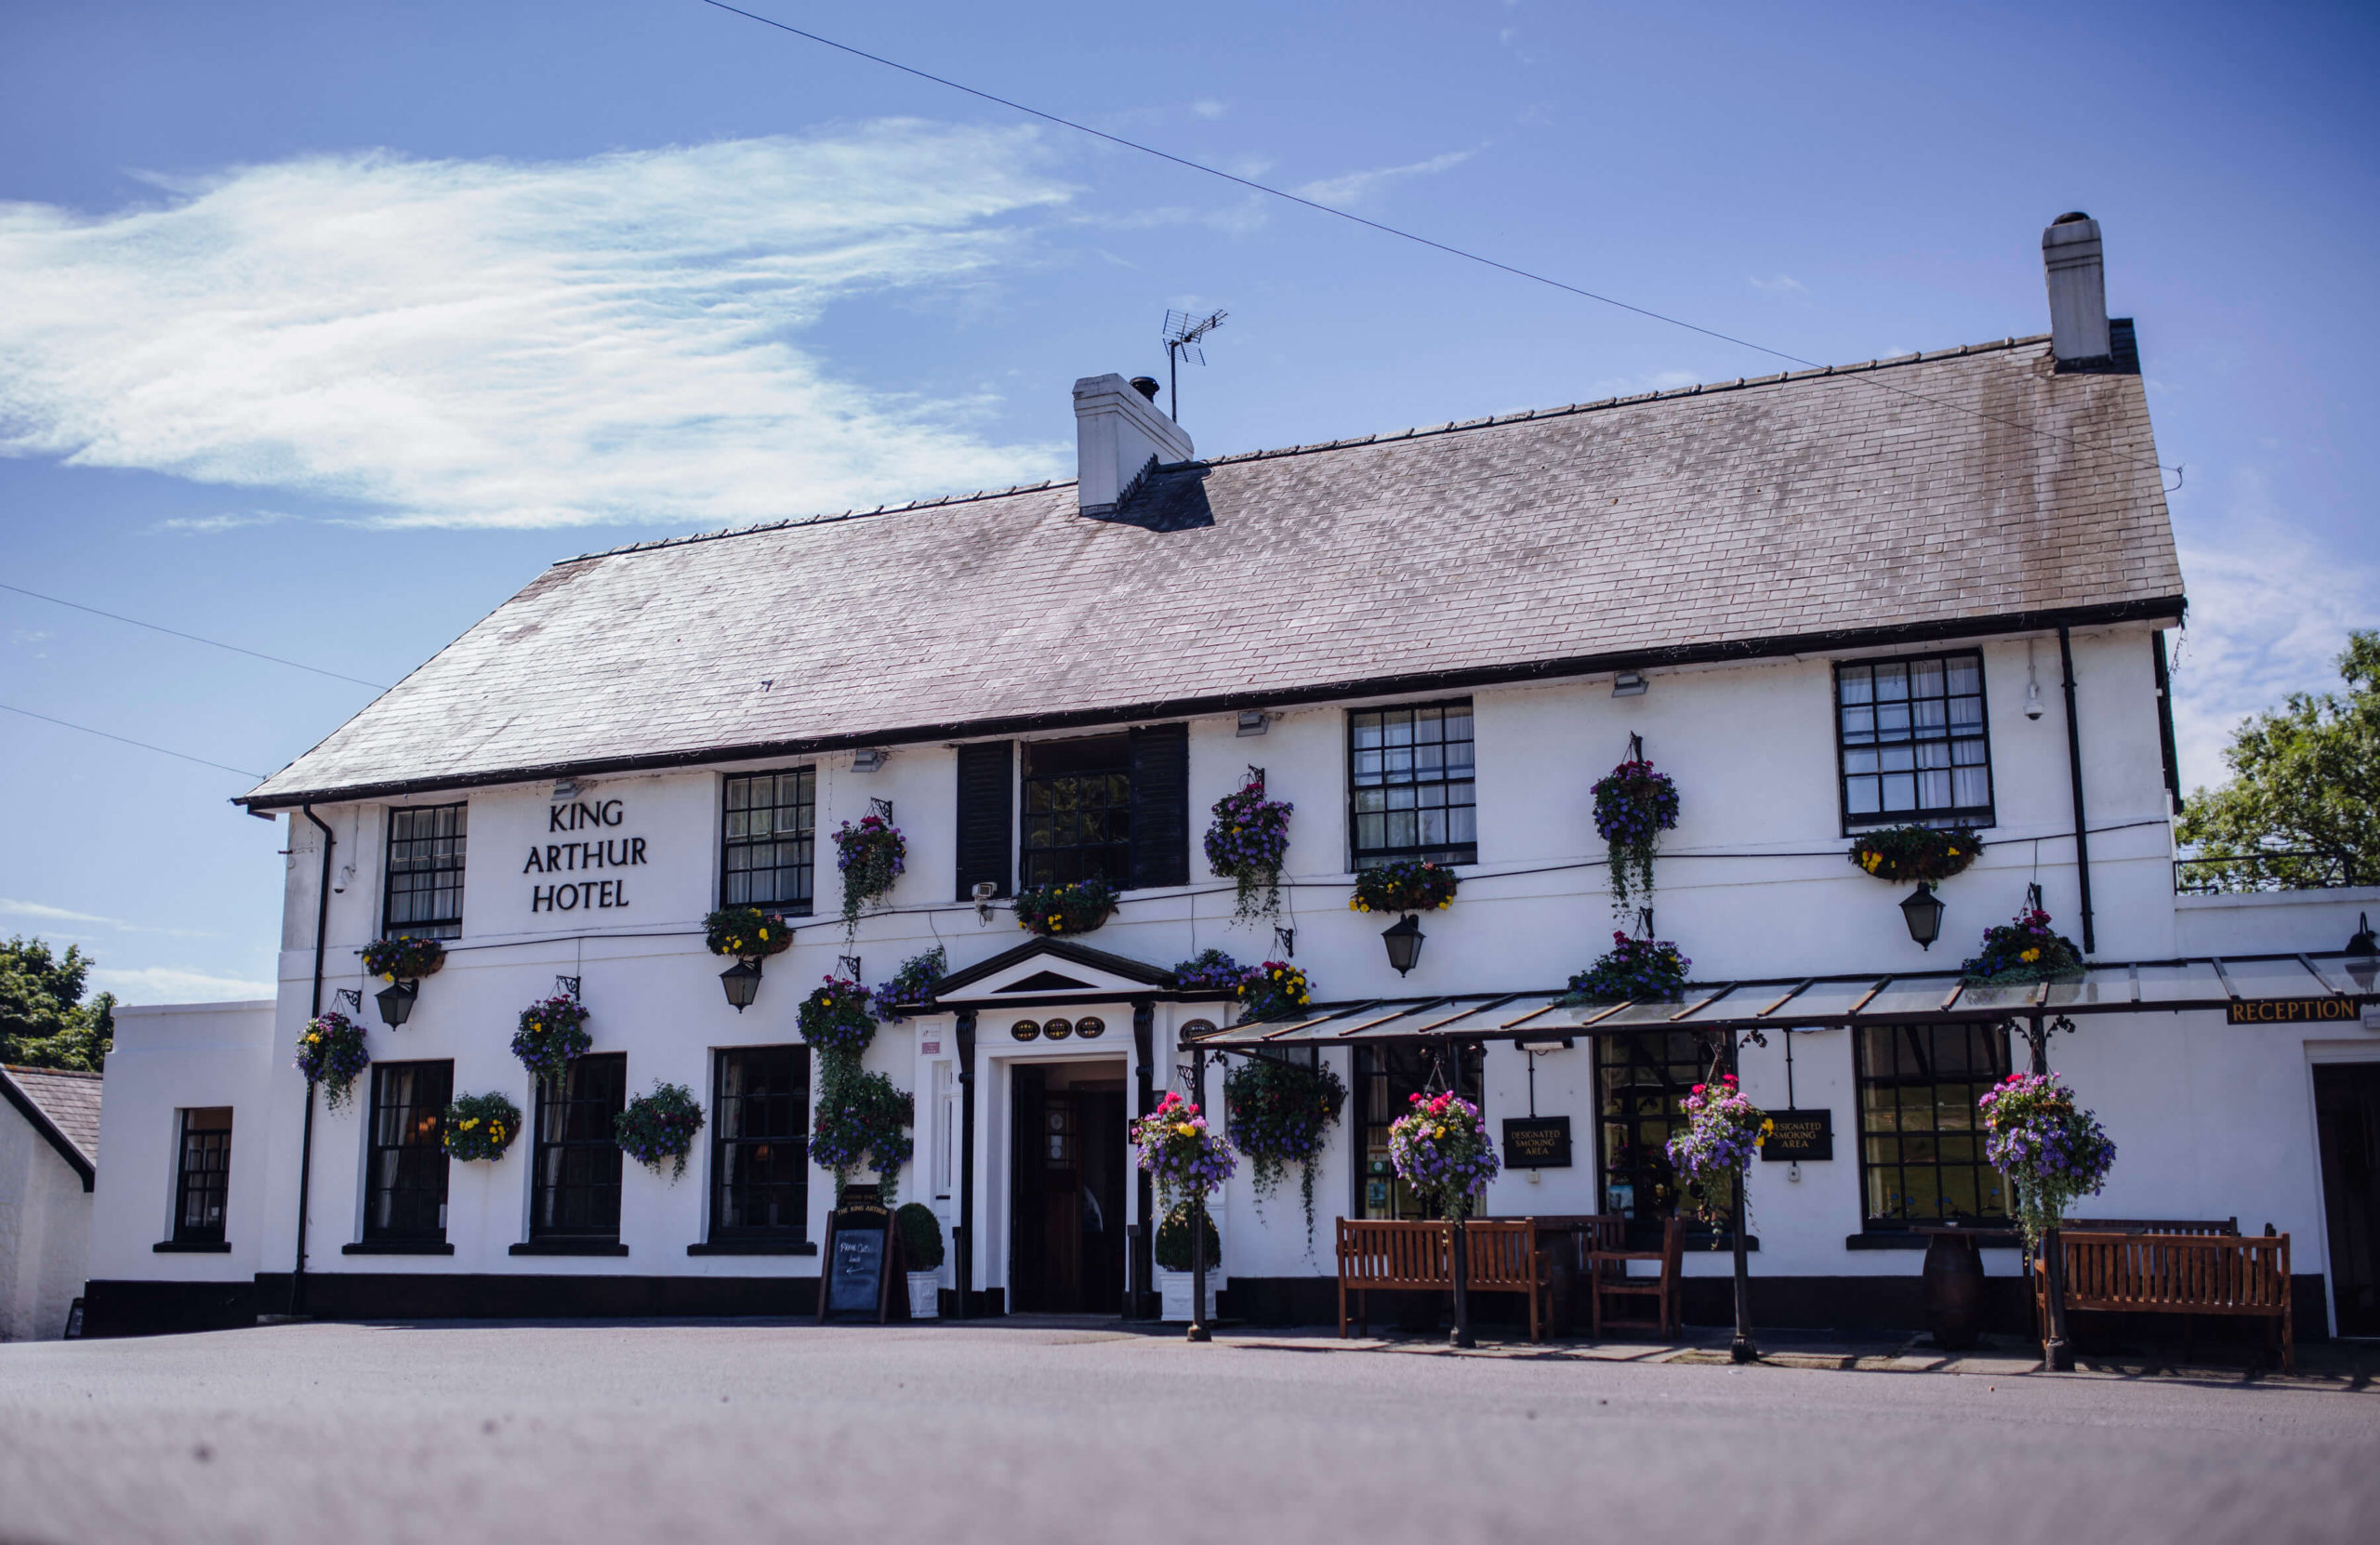 South wales holiday cottages and hotel